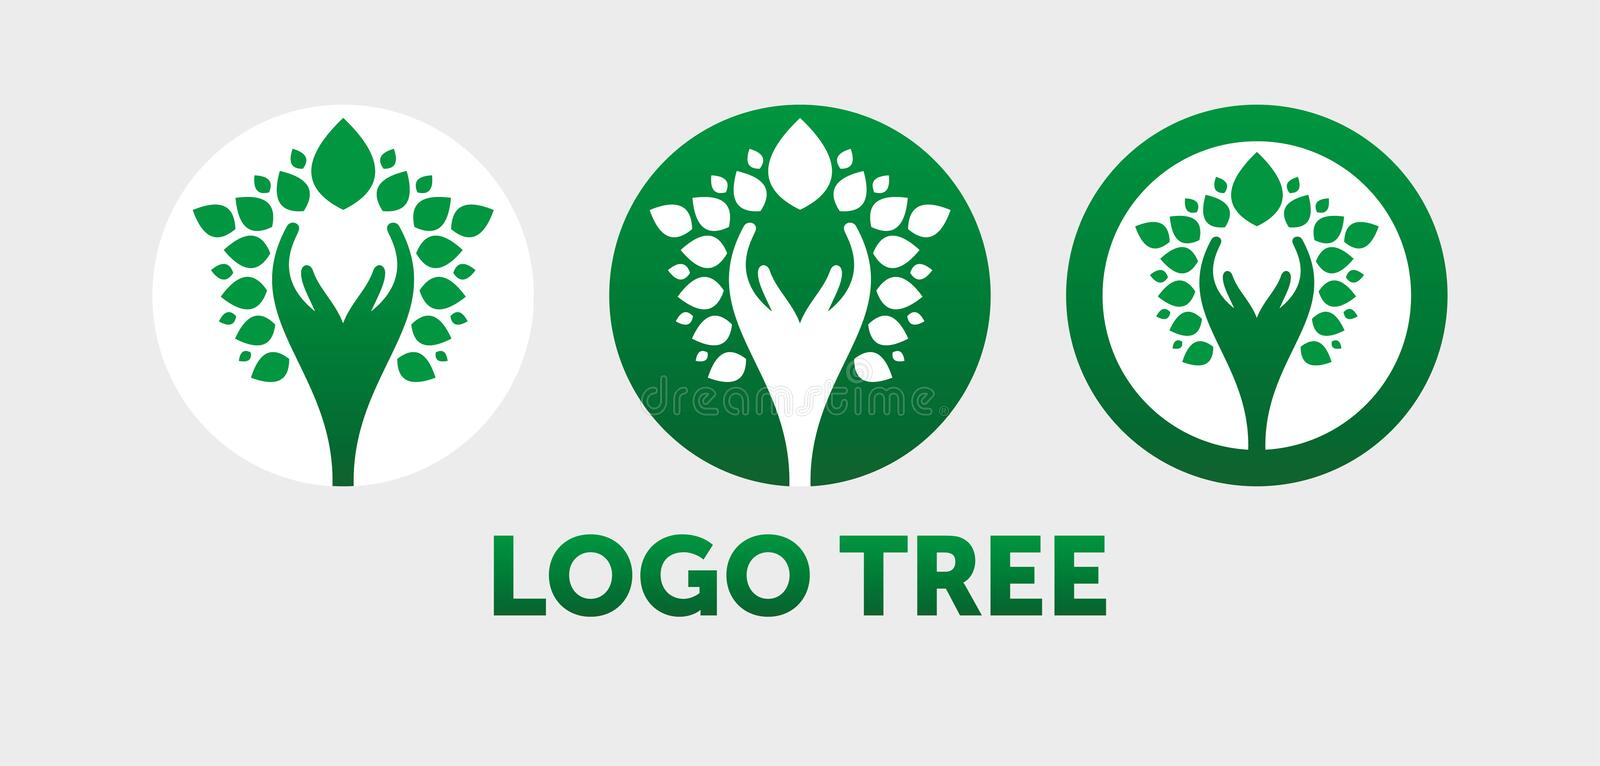 Illustration abstraite de vecteur de logo d'arbre illustration libre de droits